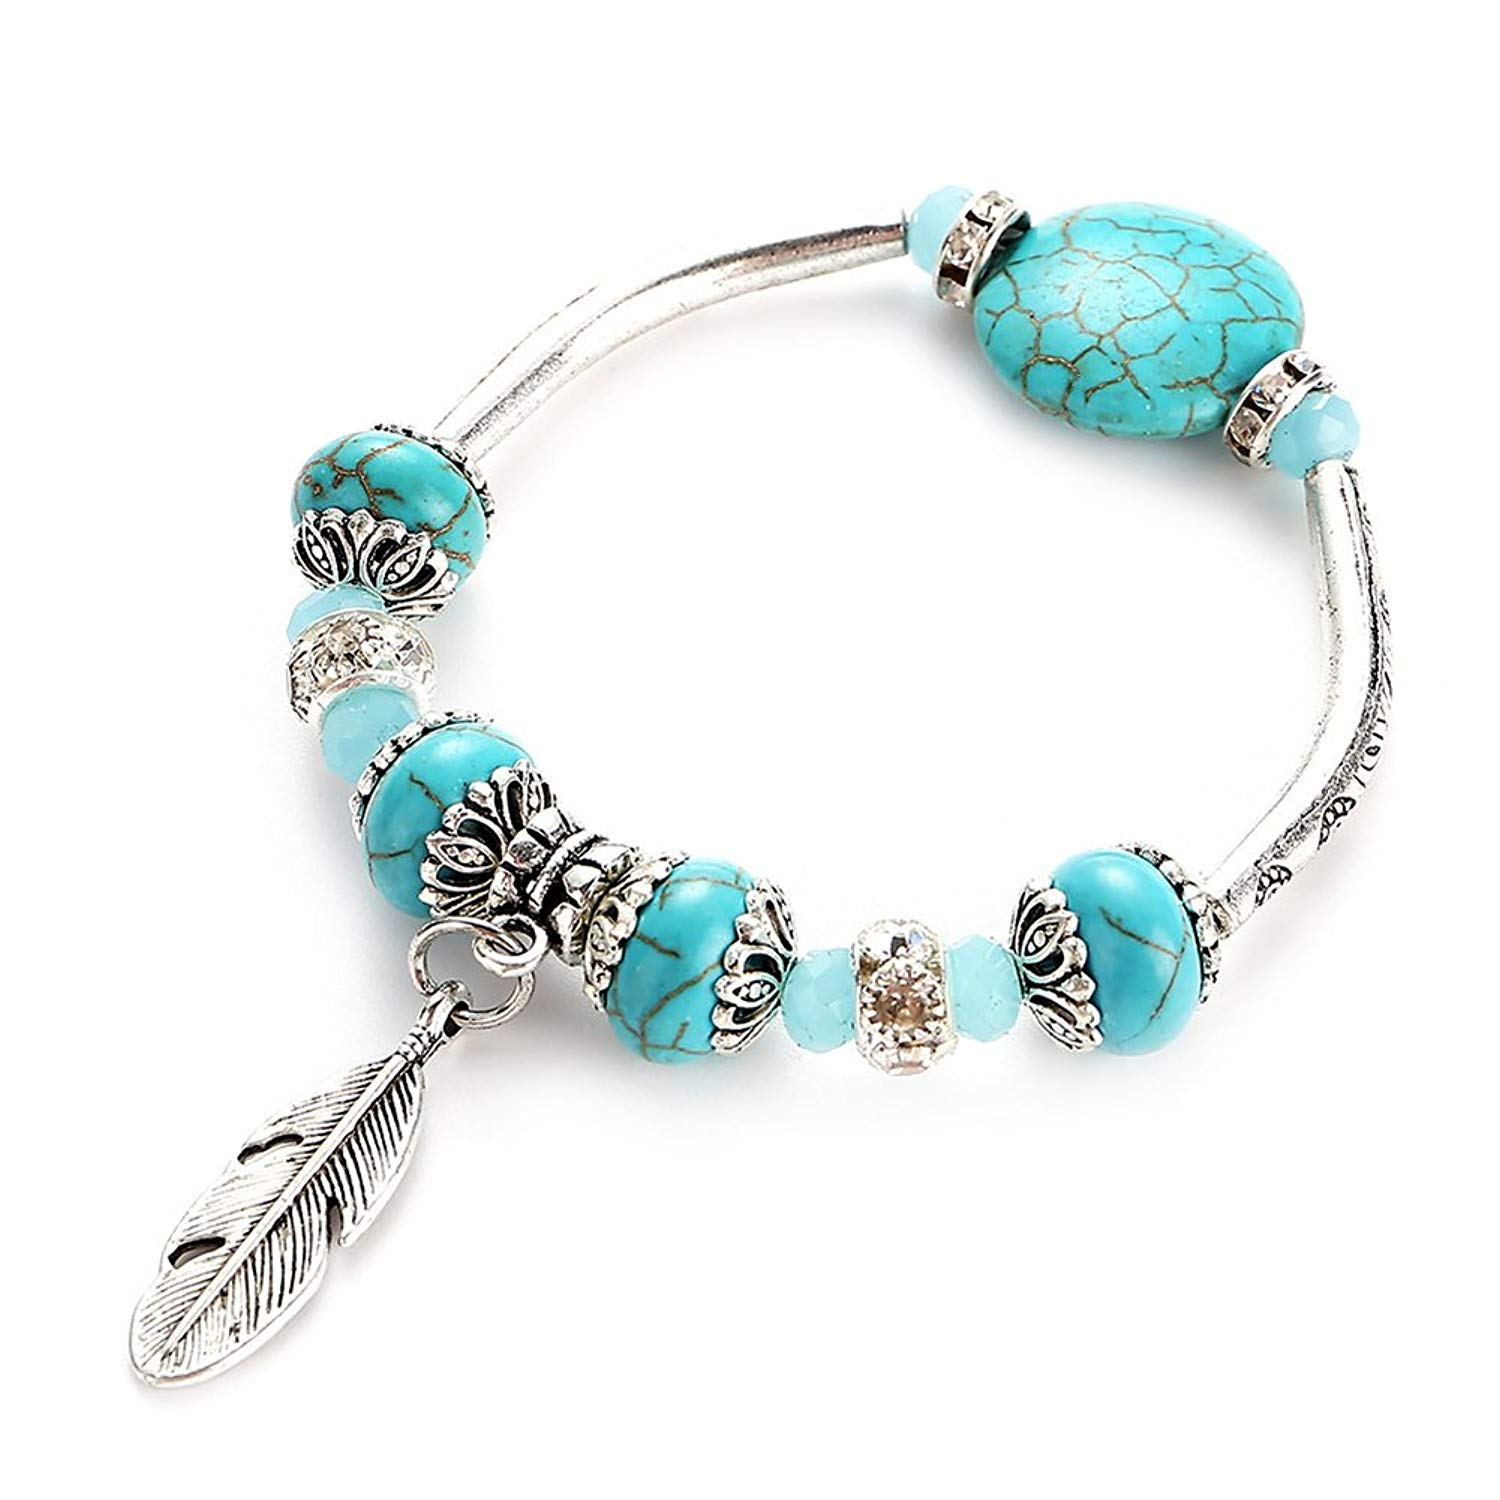 Vintage Turquoise Bead Stretch Bracelet with Leaf Charm Boho Style Antique Silver Bangle for Women Girls